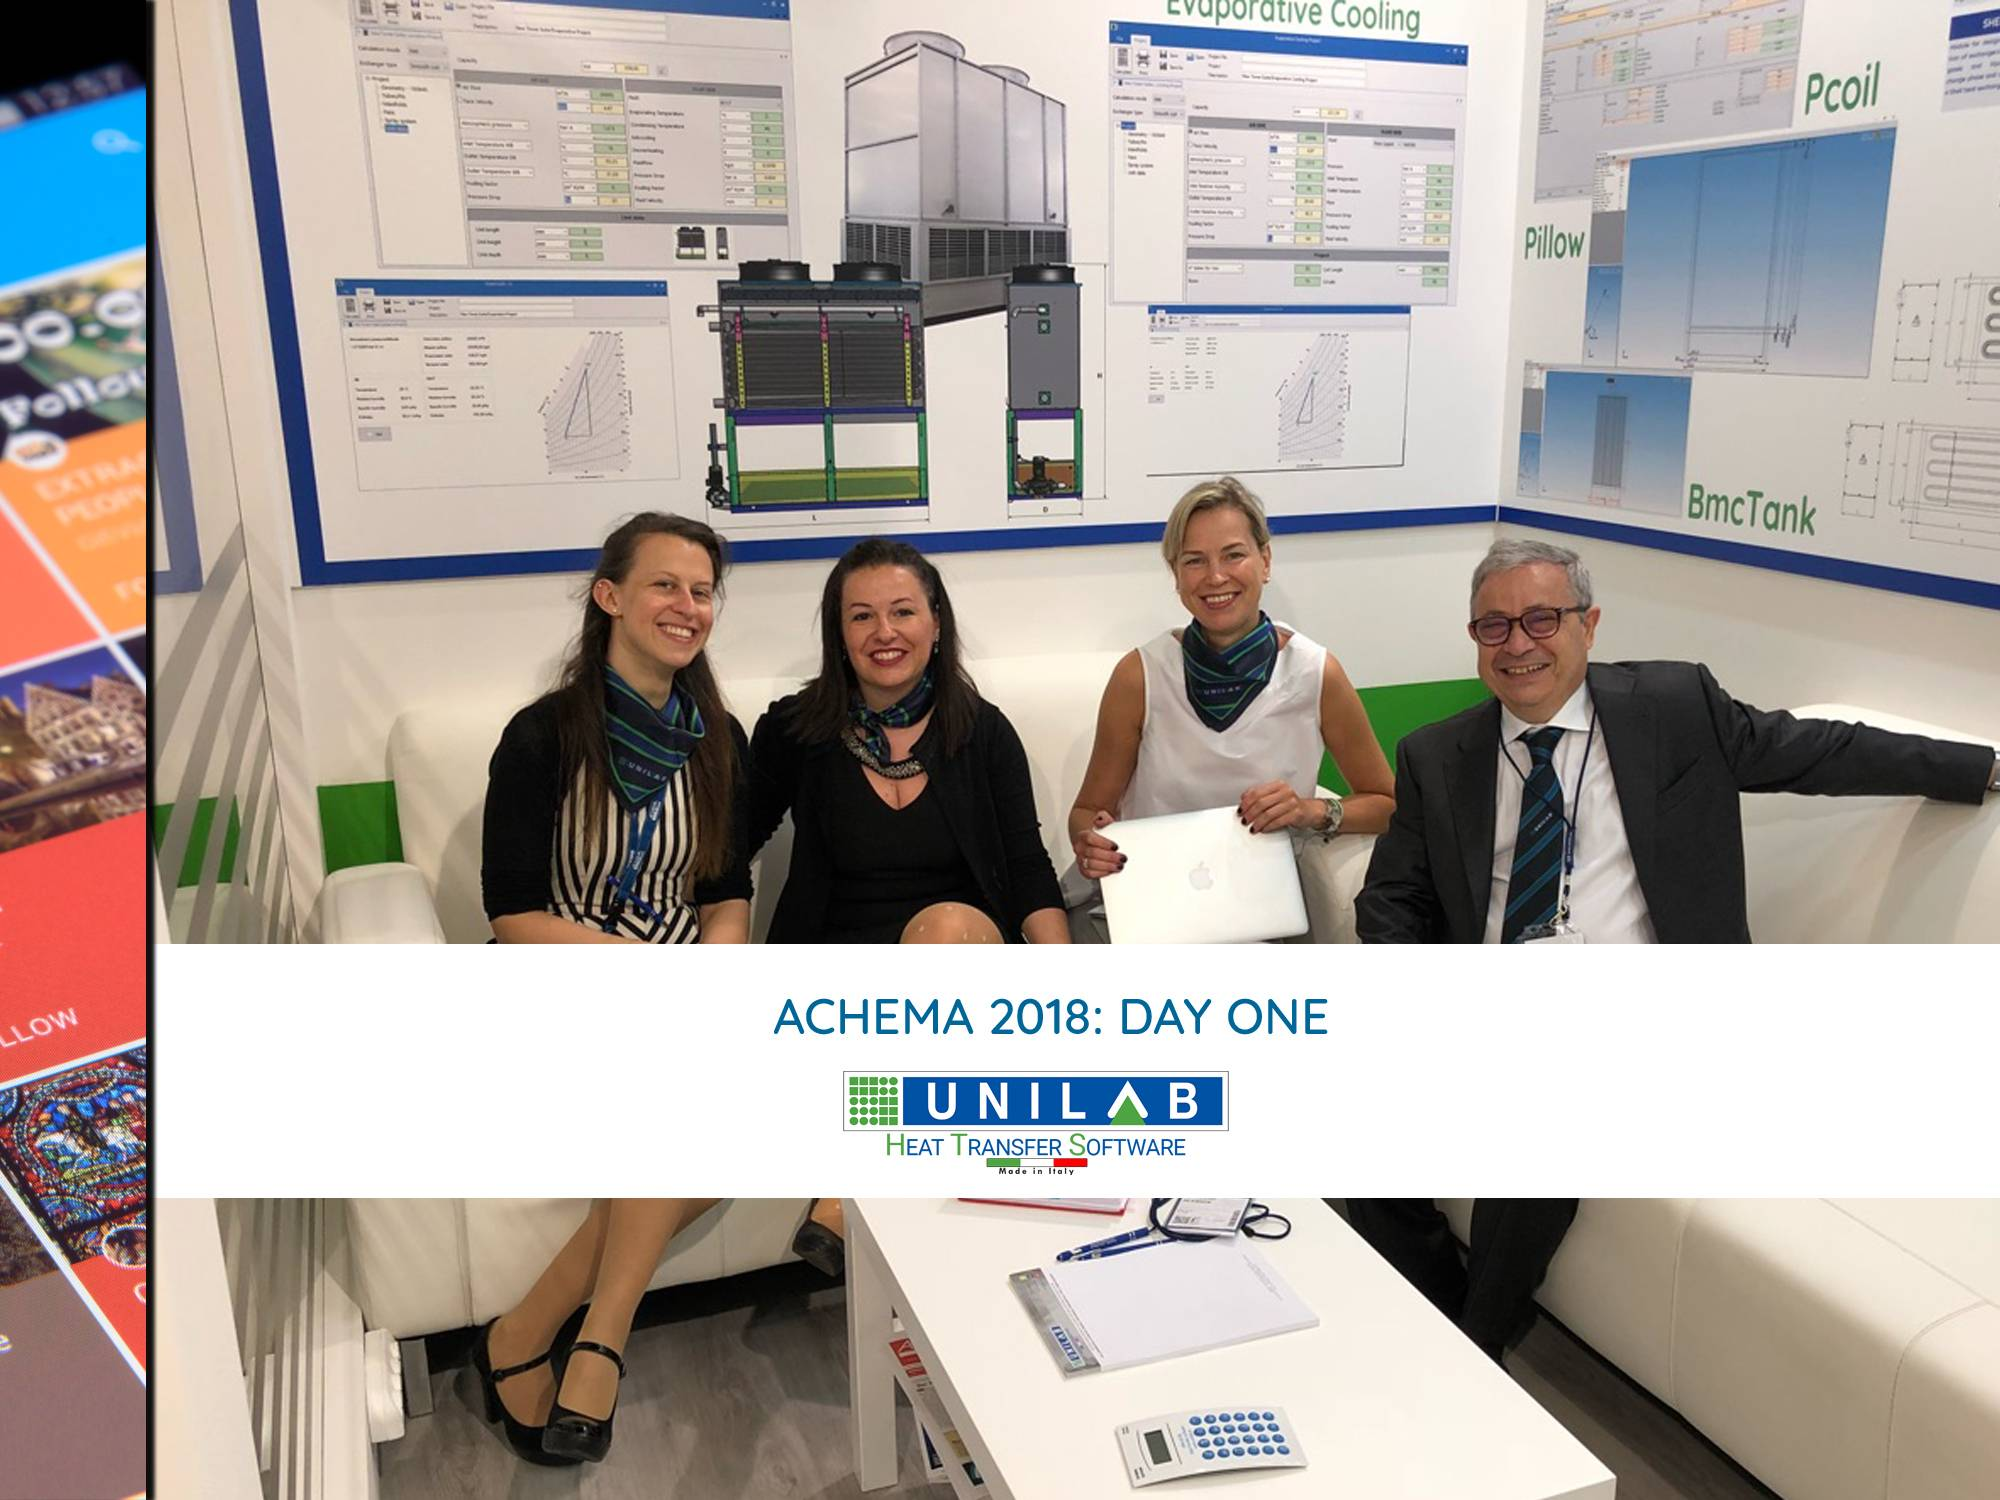 unilab heat transfer software blog achema day one